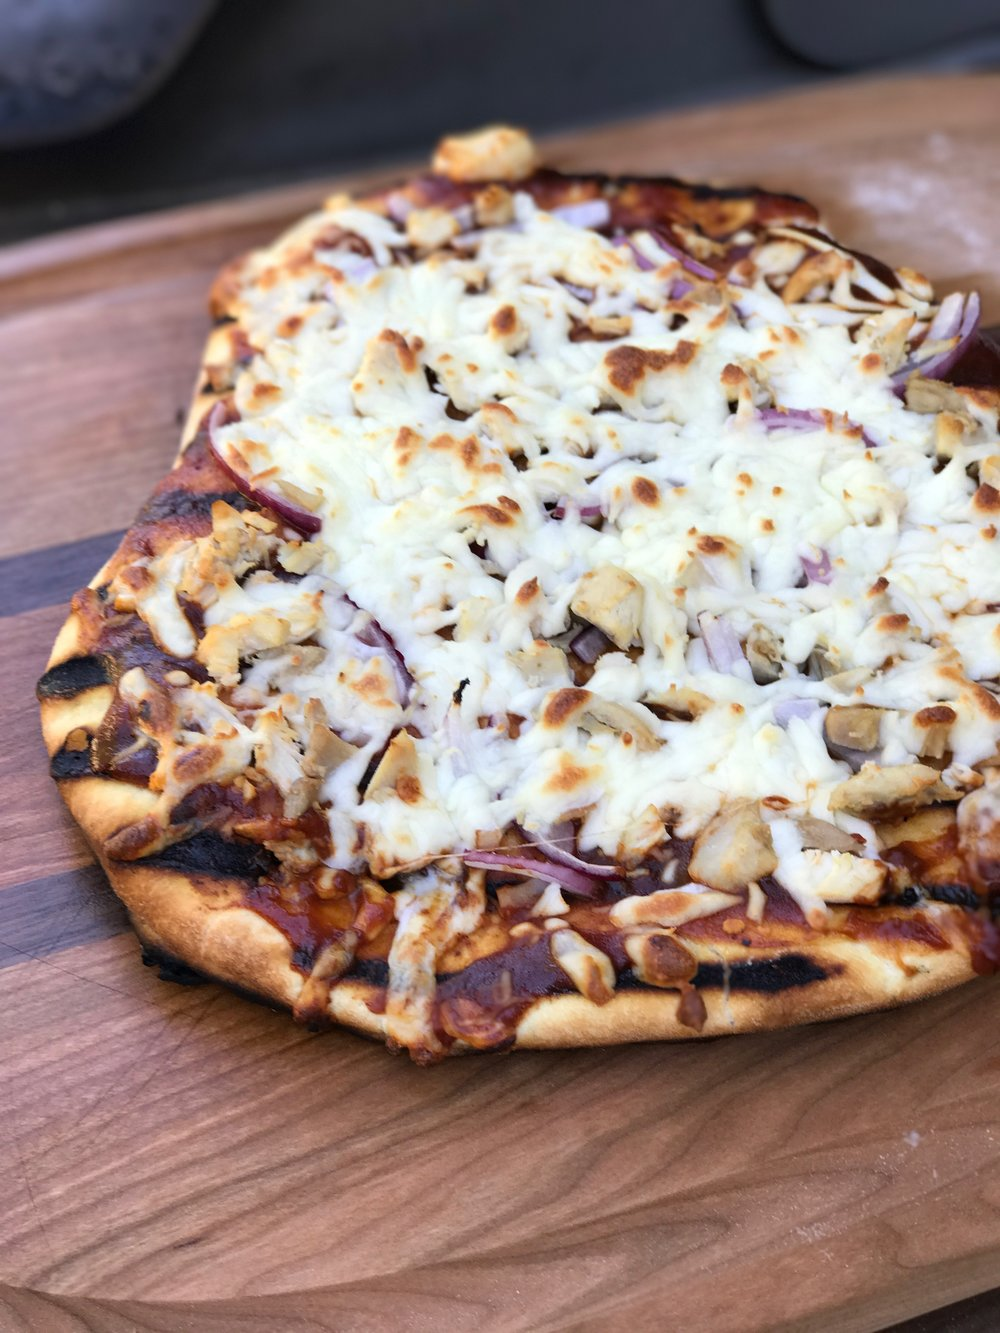 The first pizza was far from perfect, but still tasty. I topped it with Pendleton BBQ sauce, rotisserie chicken, red onions and mozzarella cheese.